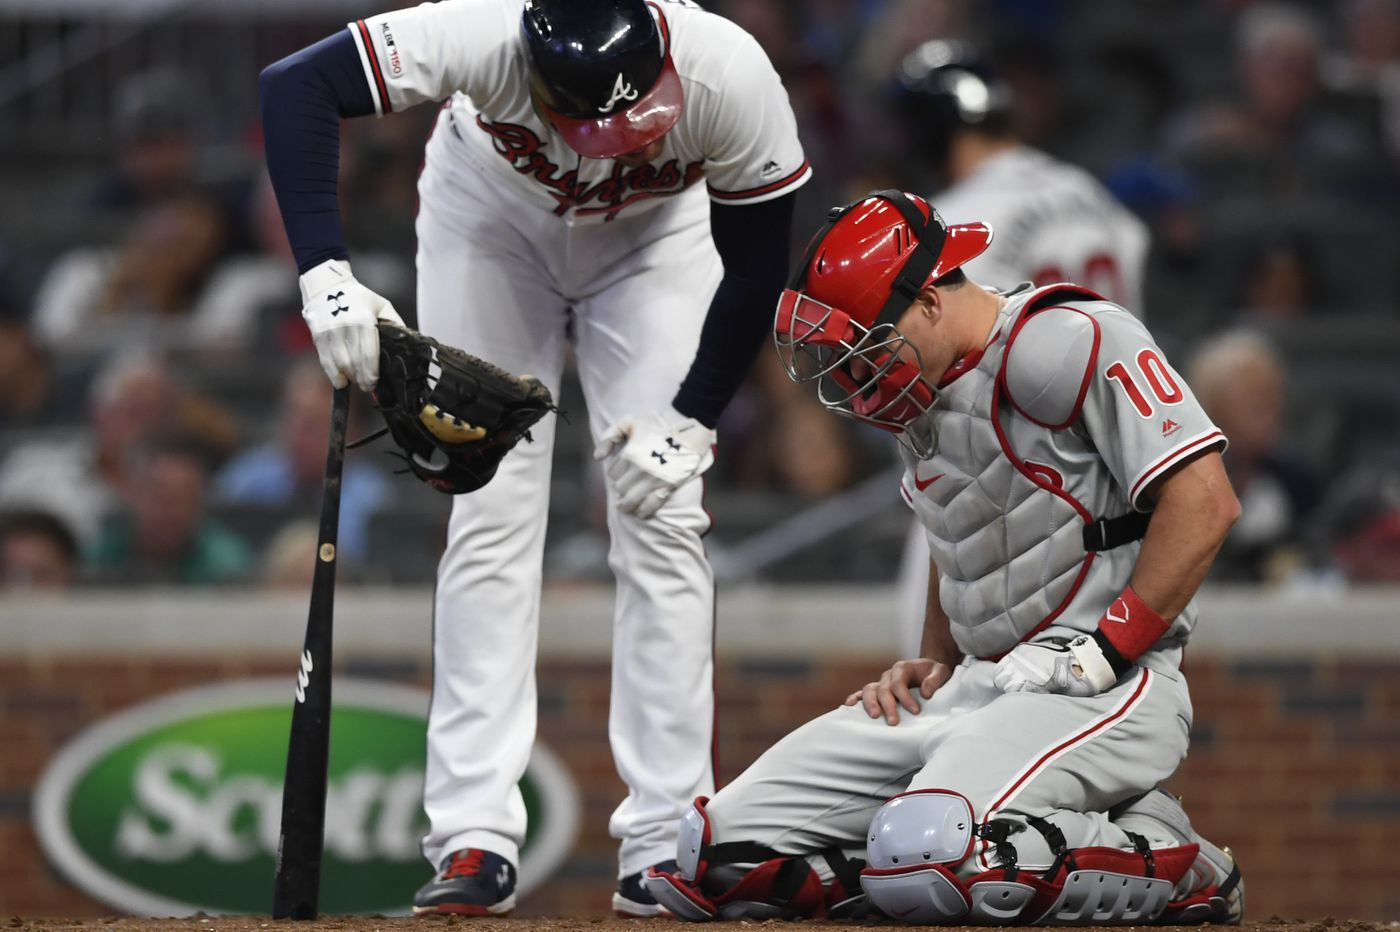 Jay Bruce, J.T. Realmuto both injured, out for series finale against Braves